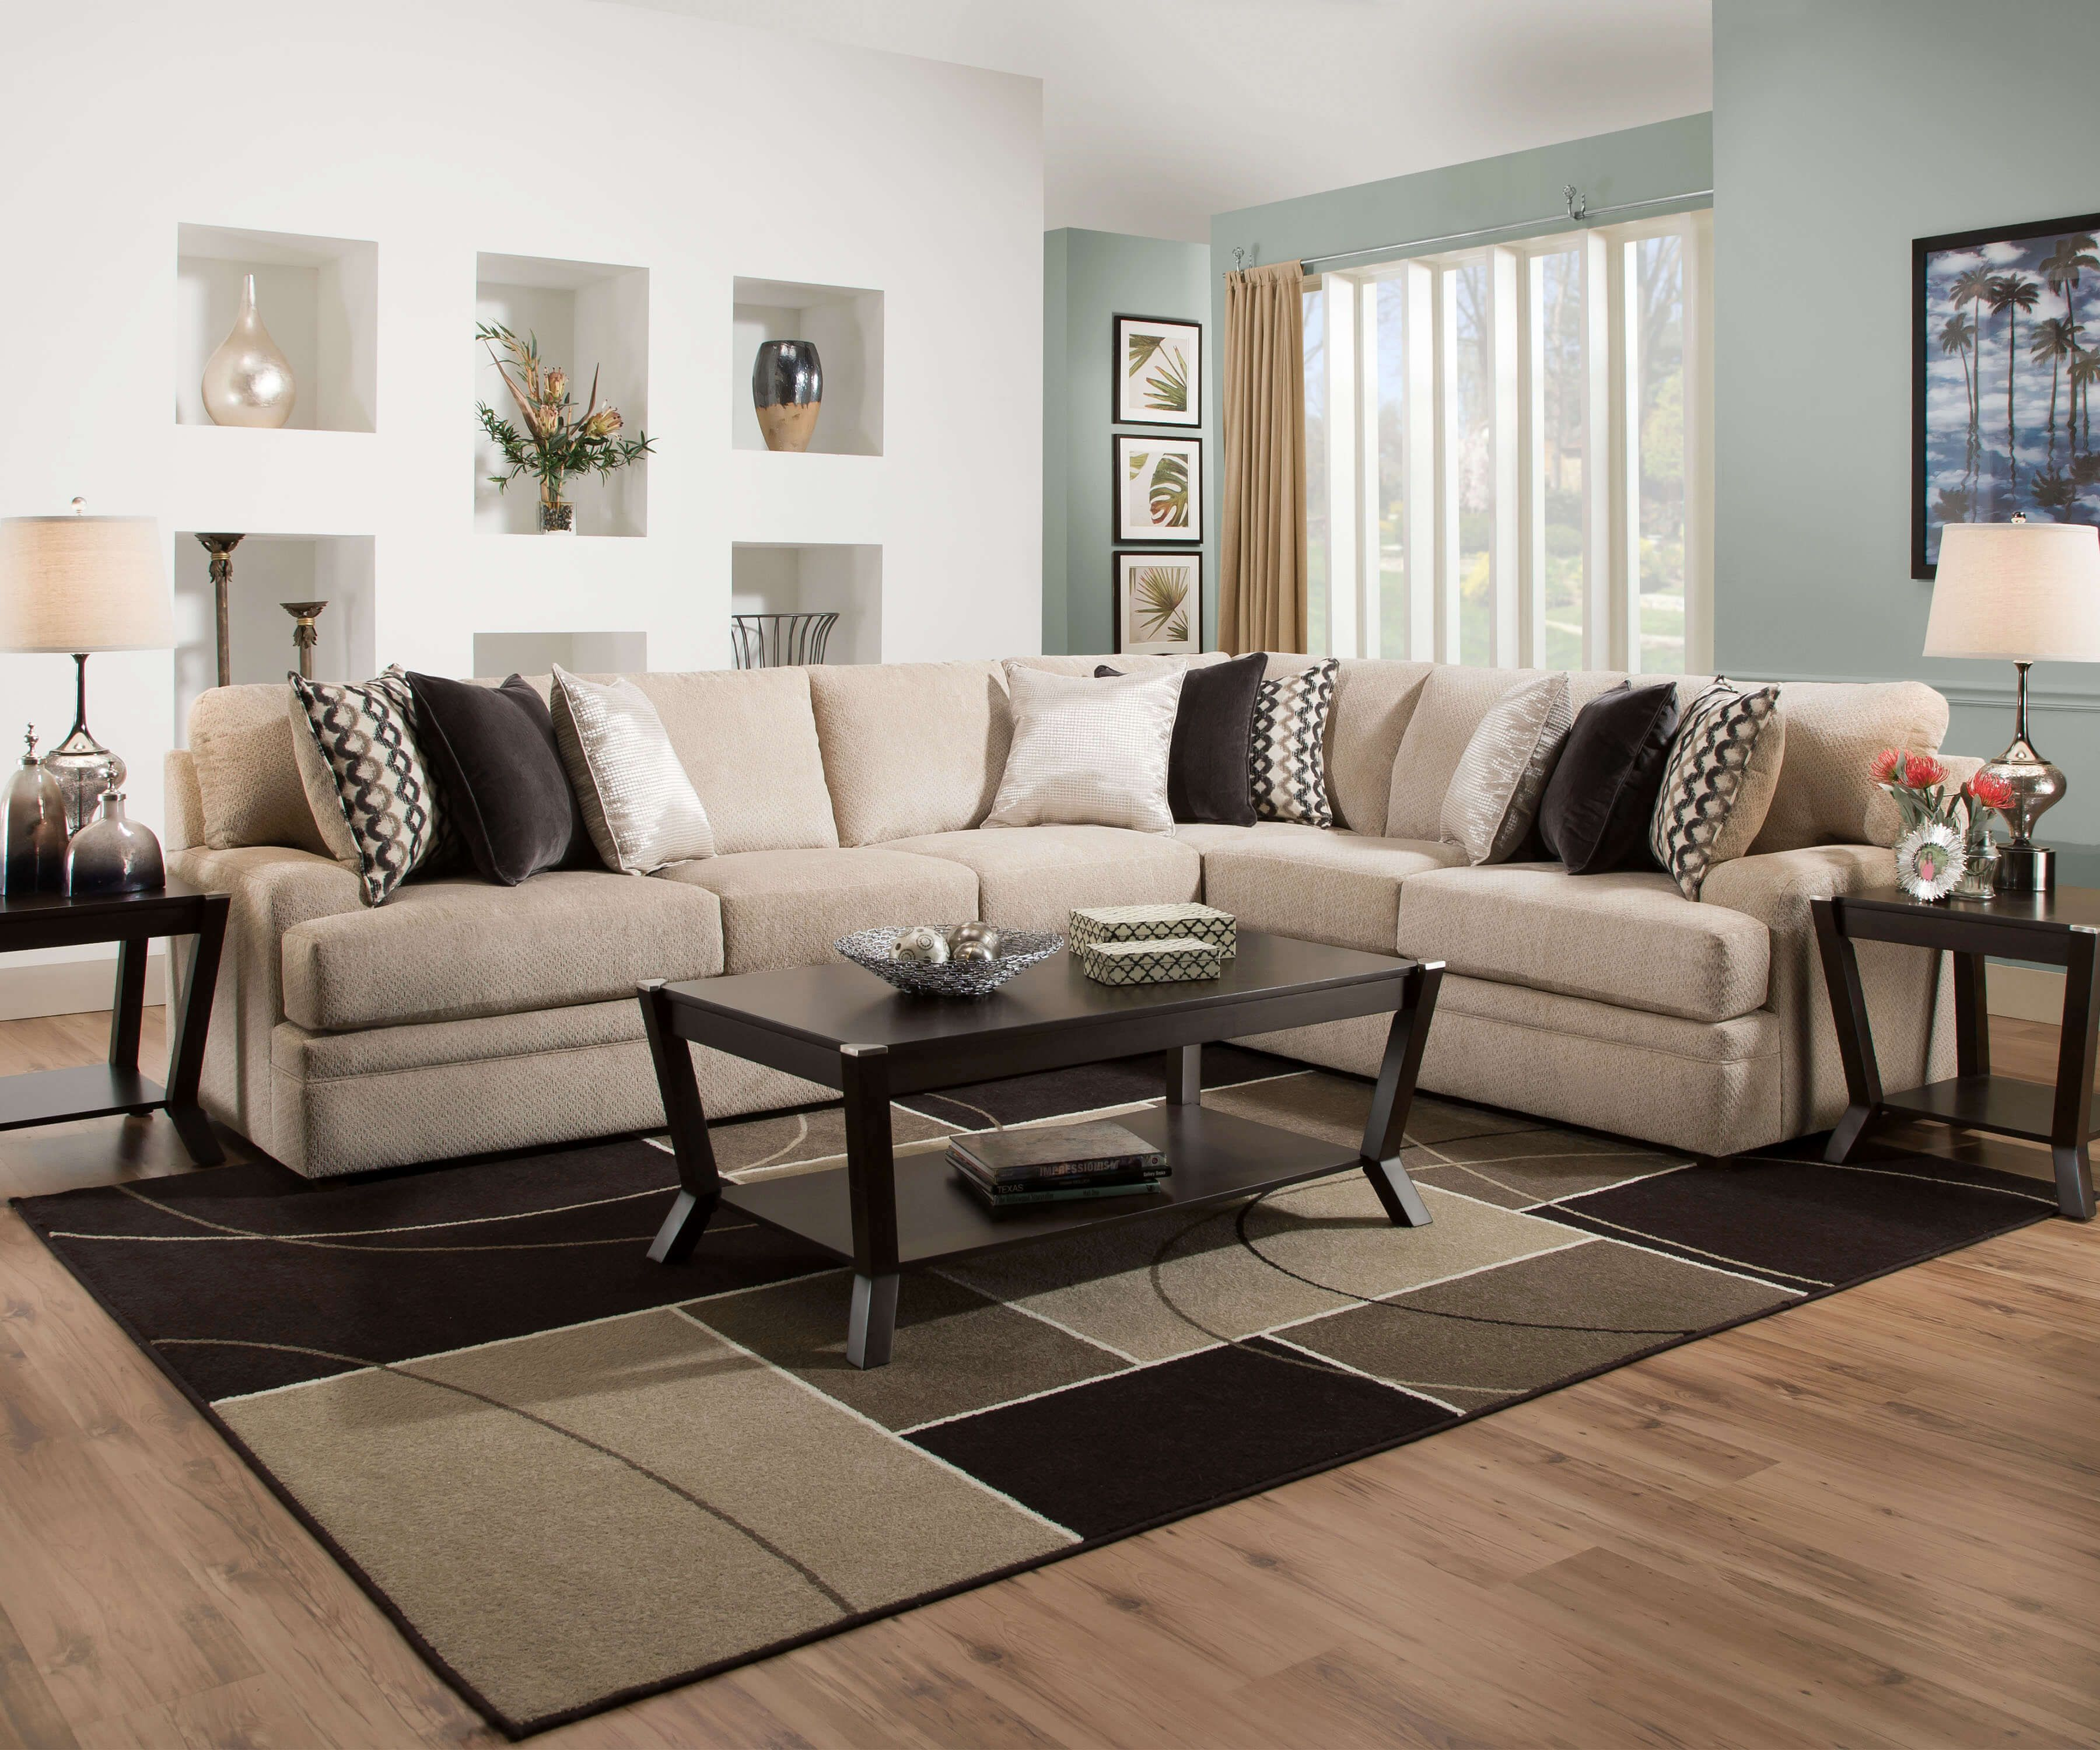 The Bellamy Putty sectional by Simmons offers extreme fort